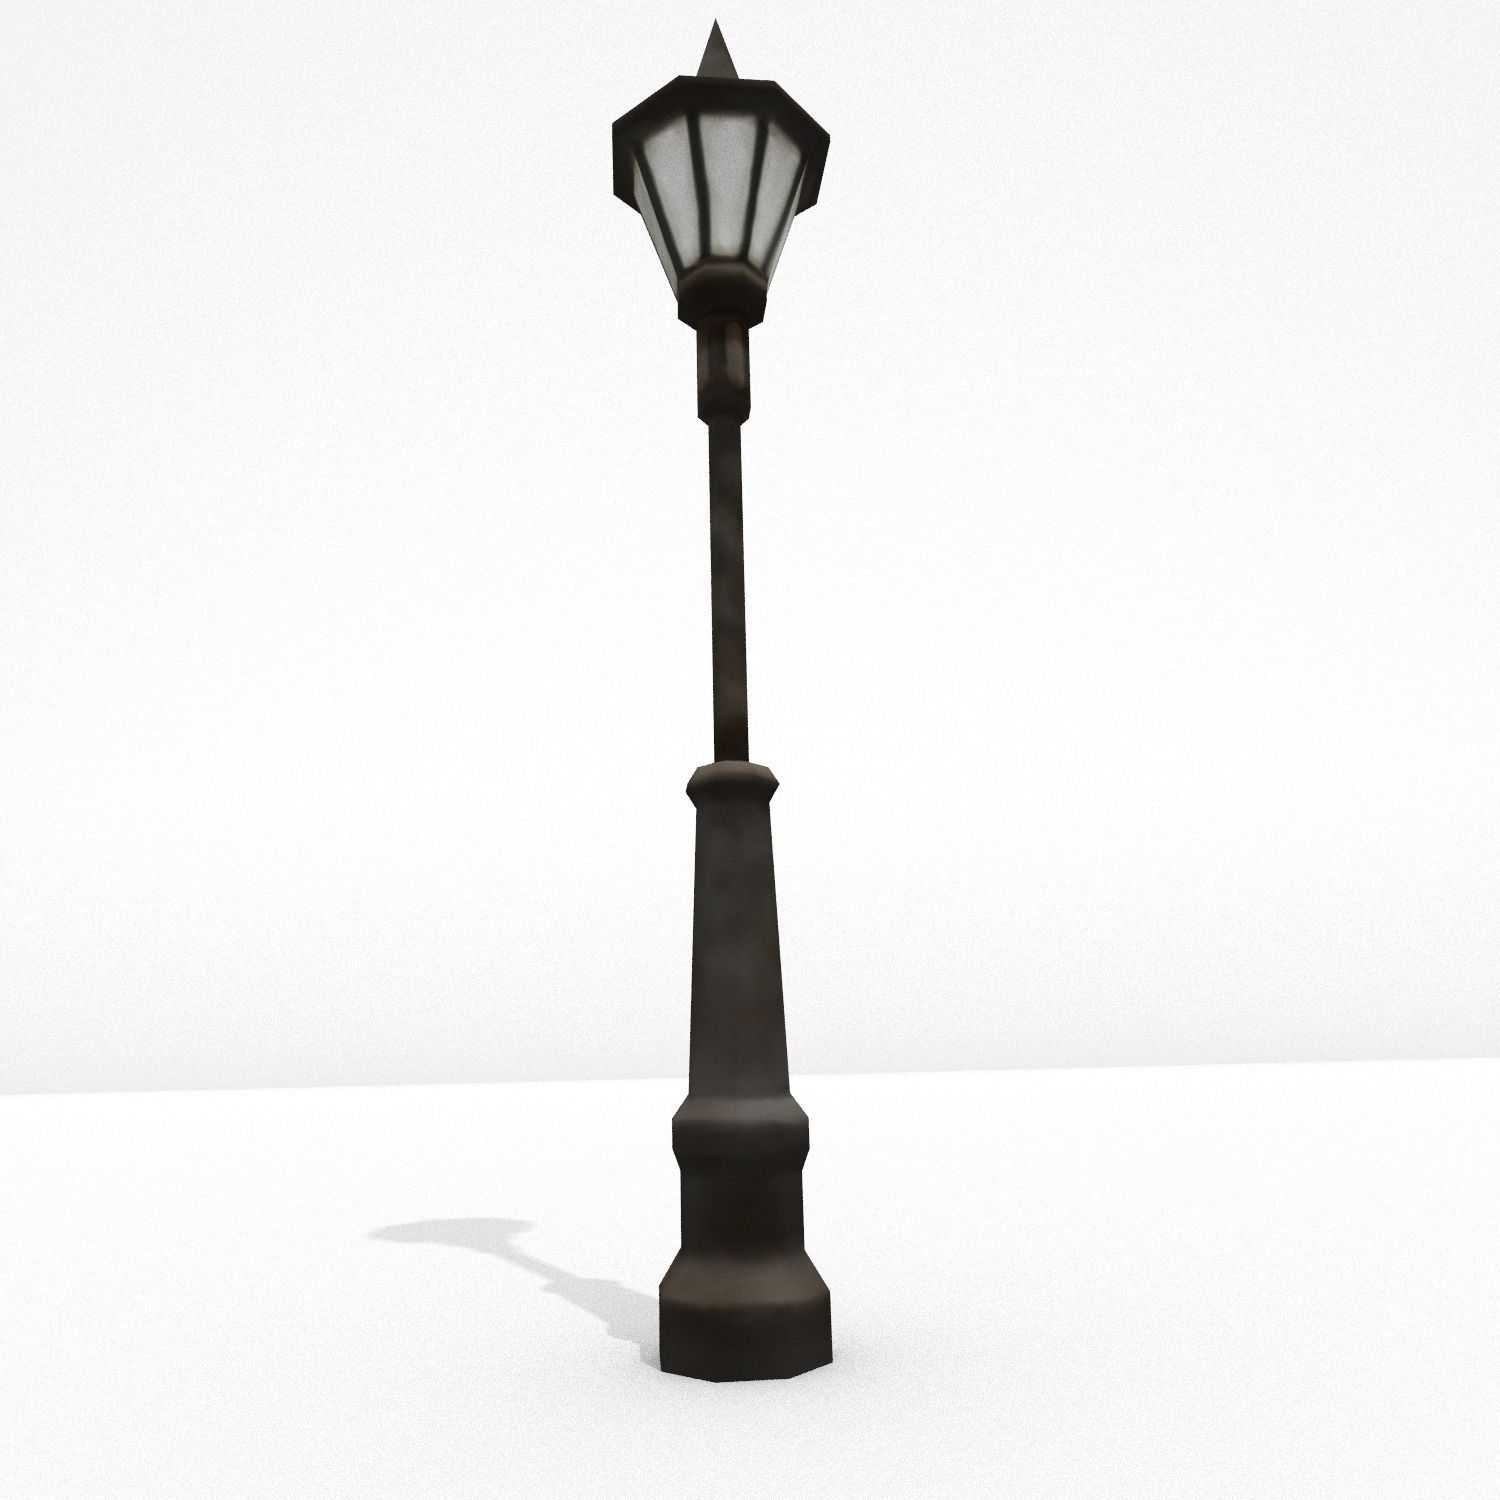 3D asset Low Poly Street Lamp | CGTrader